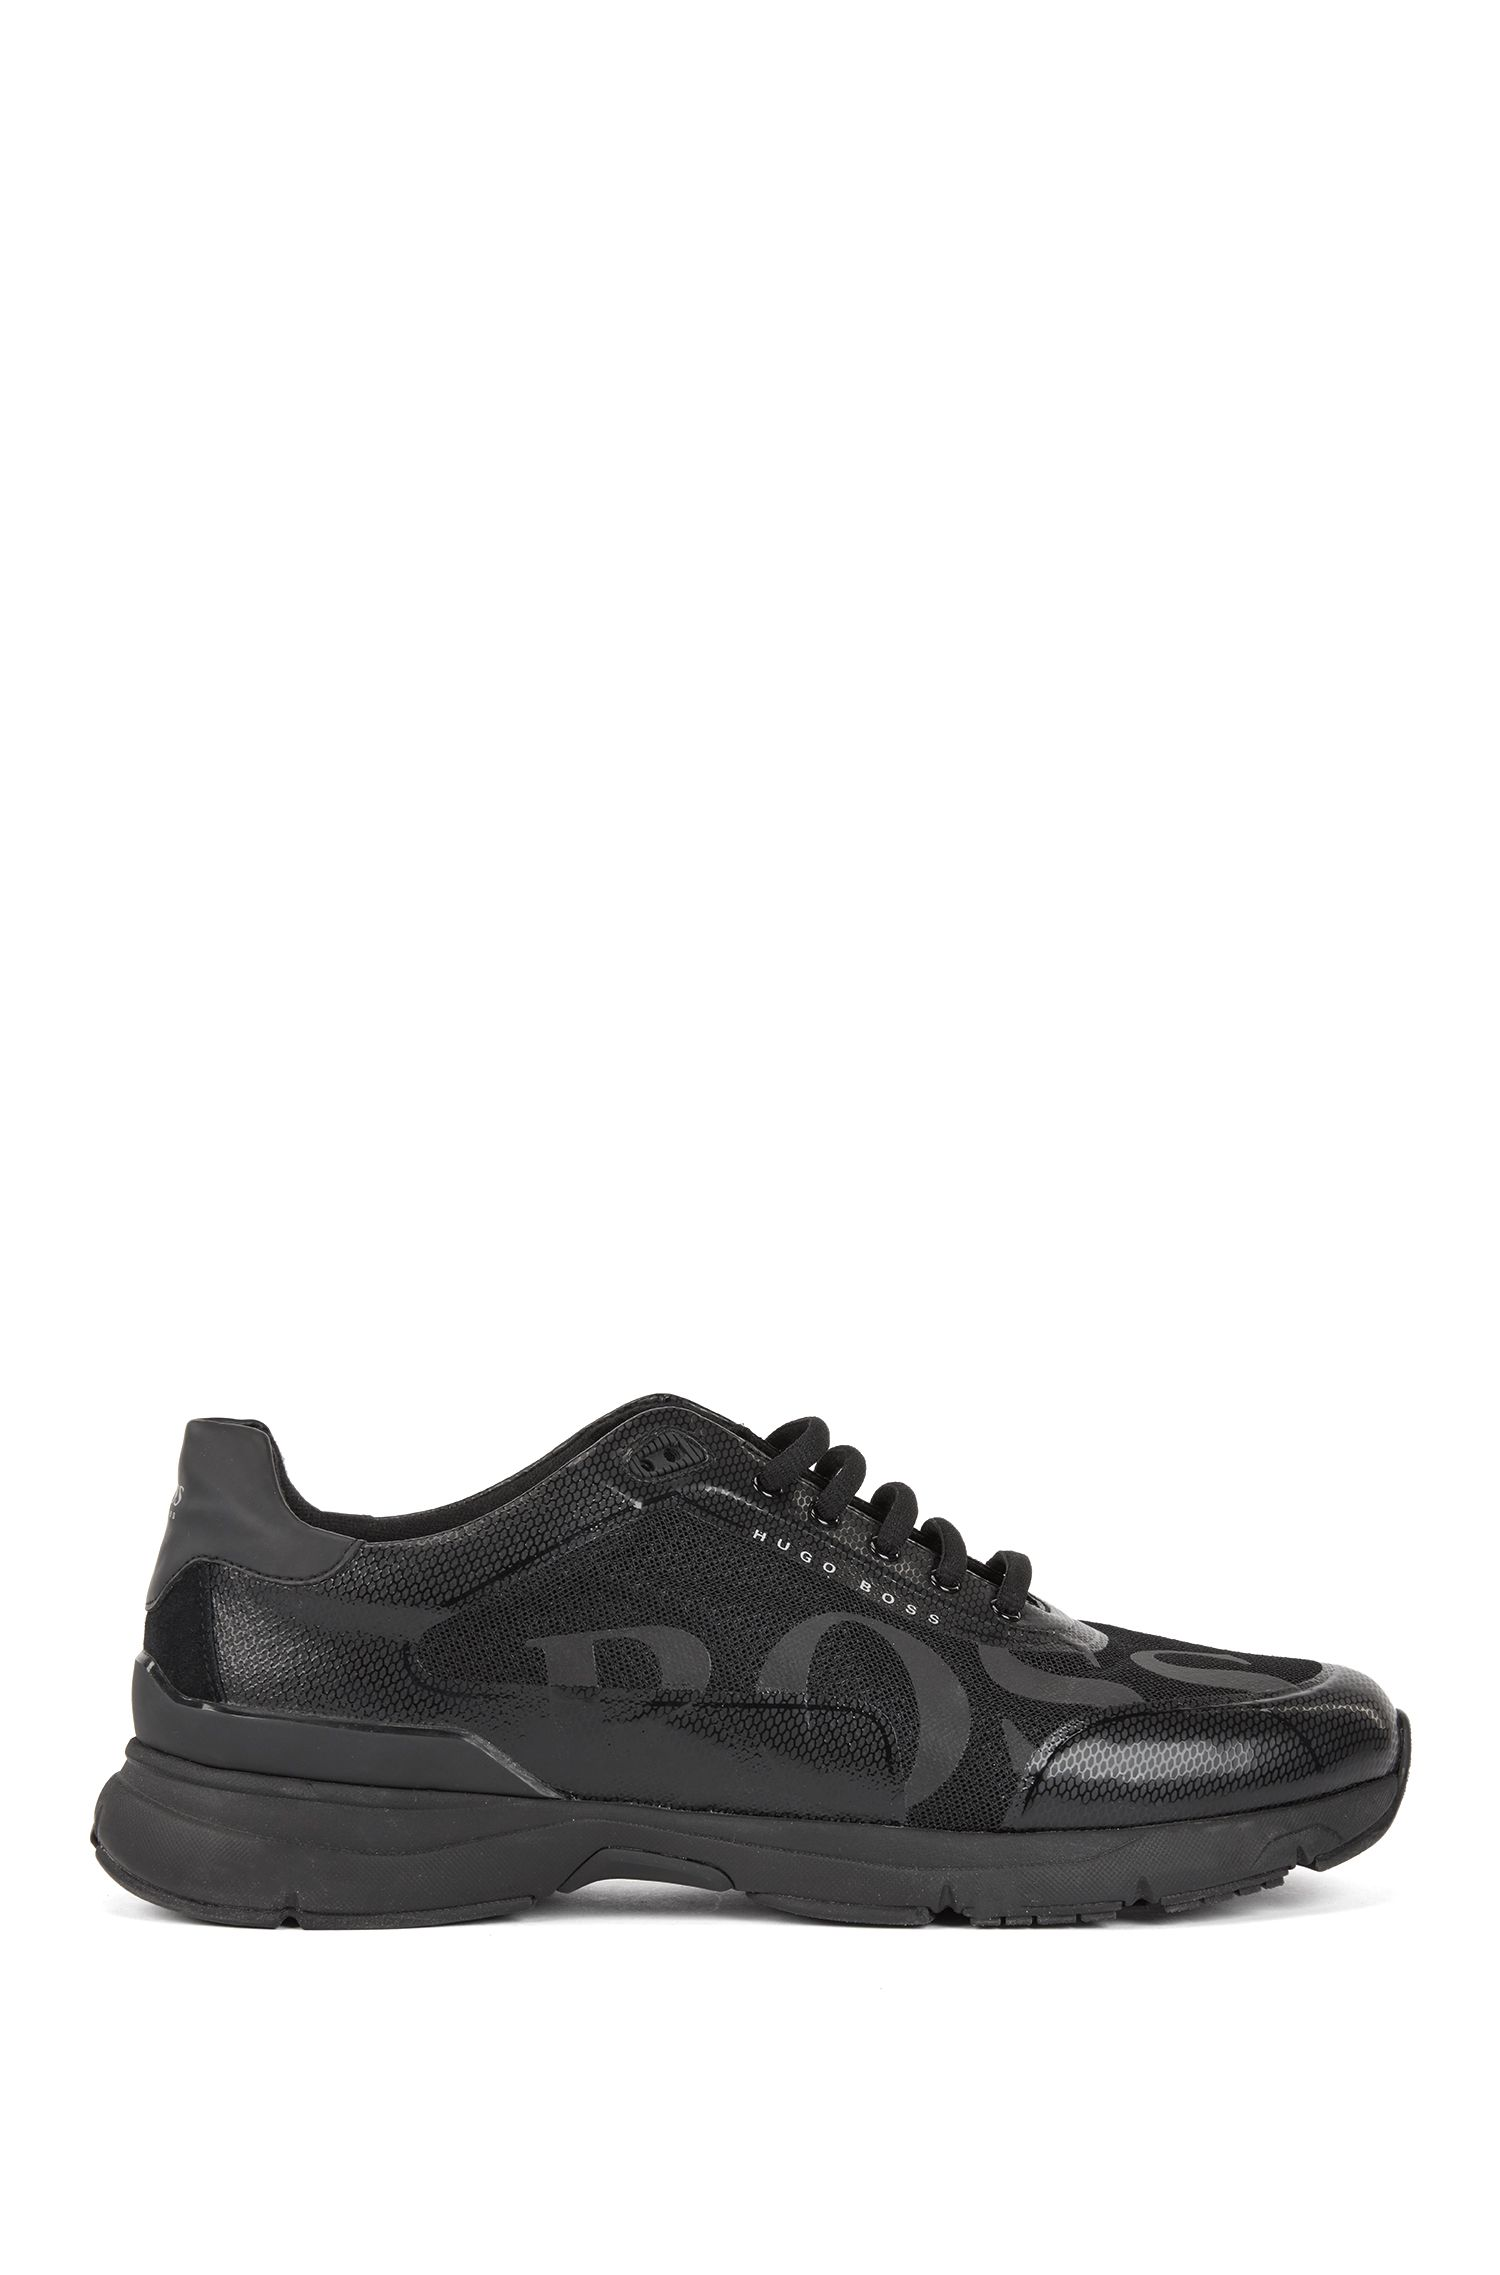 Running-inspired sneakers with bamboo-charcoal lining, Black